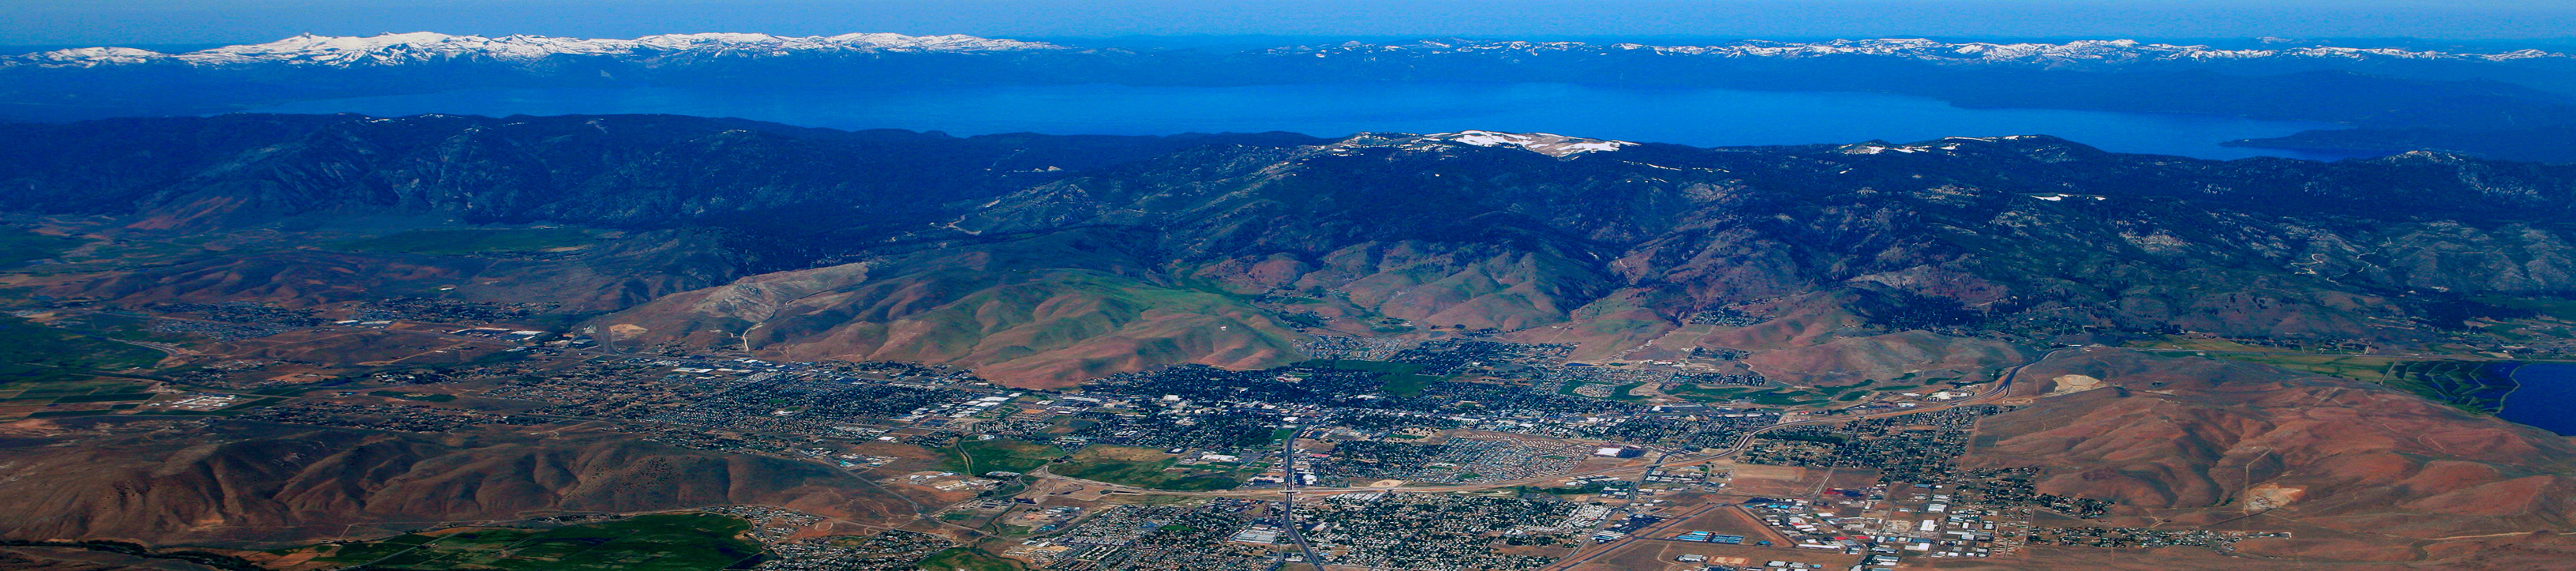 Carson City and Lake Tahoe Aerial